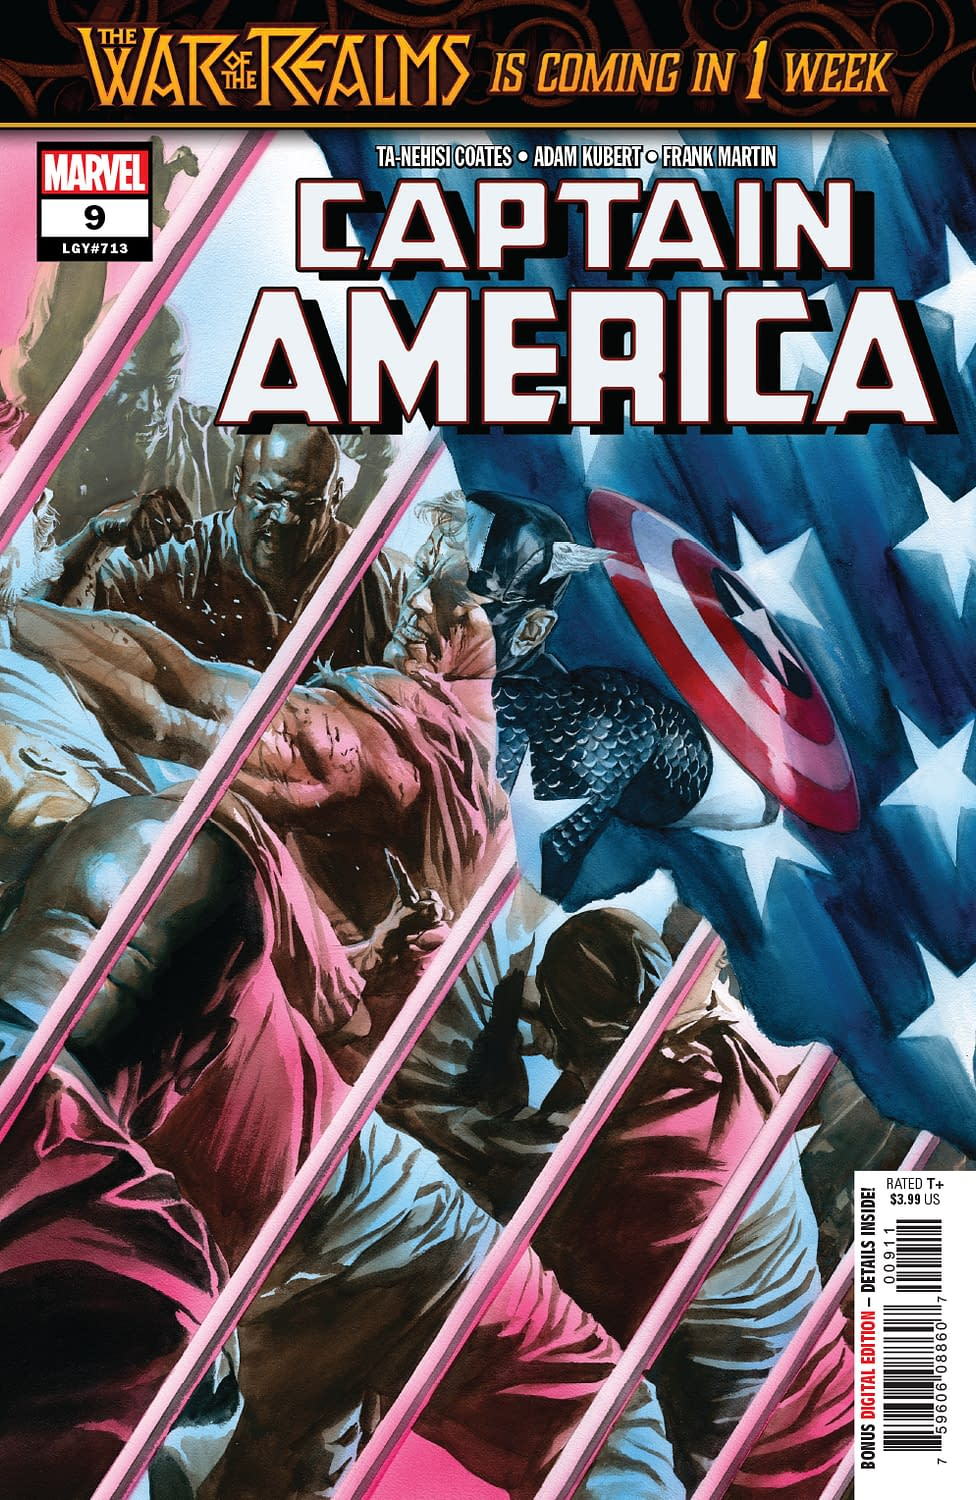 Fake News in Action in Next Week's Captain America #9